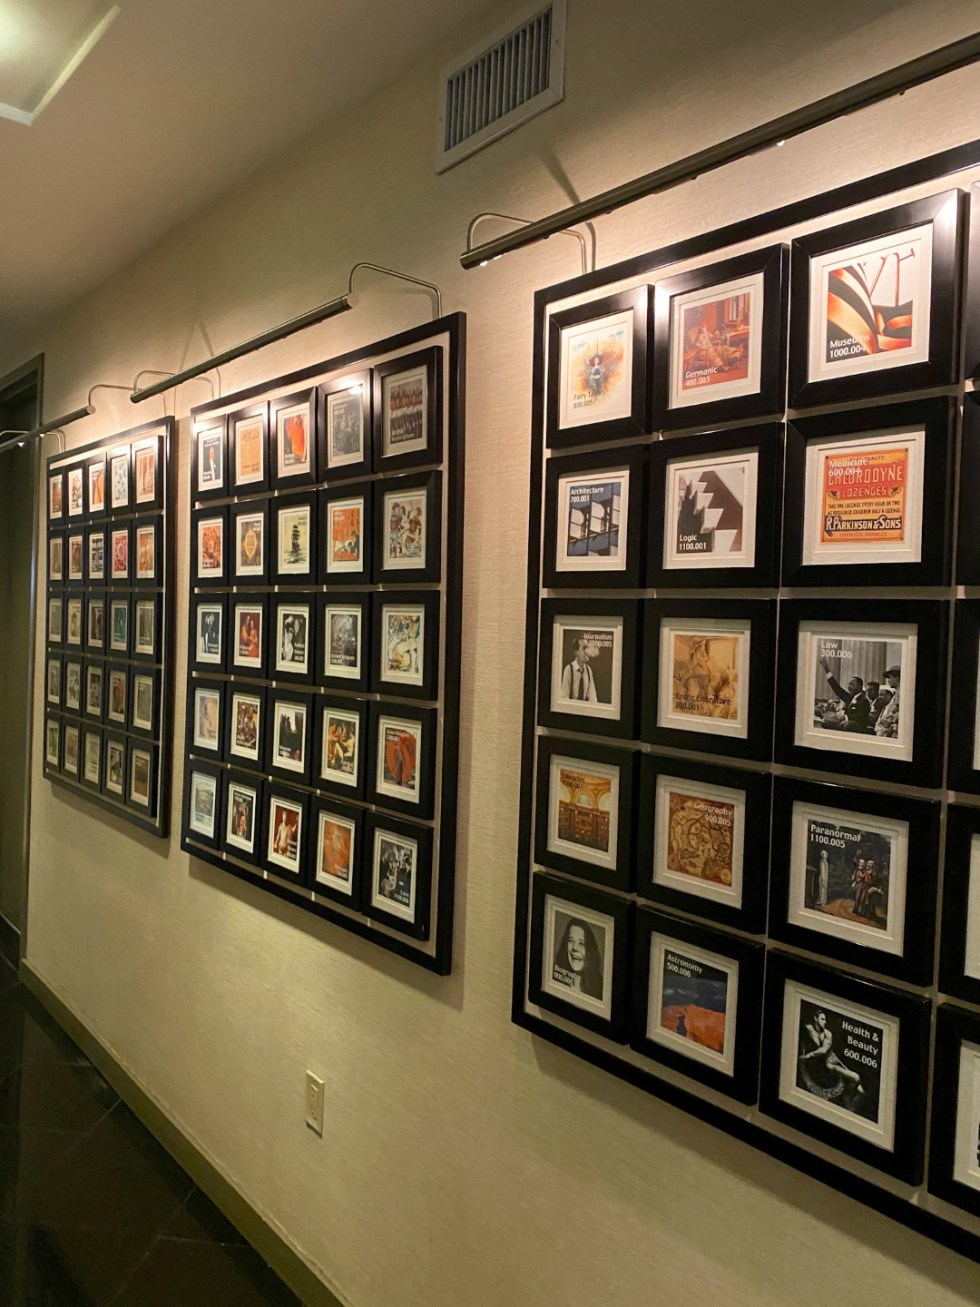 NYC Summer Weekend: Things to Do in NYC in the Summer - I'm Fixin' To - @imfixintoblog   NYC Summer Weekend by popular NC travel blog, I'm Fixin' To: image of framed vintage prints.